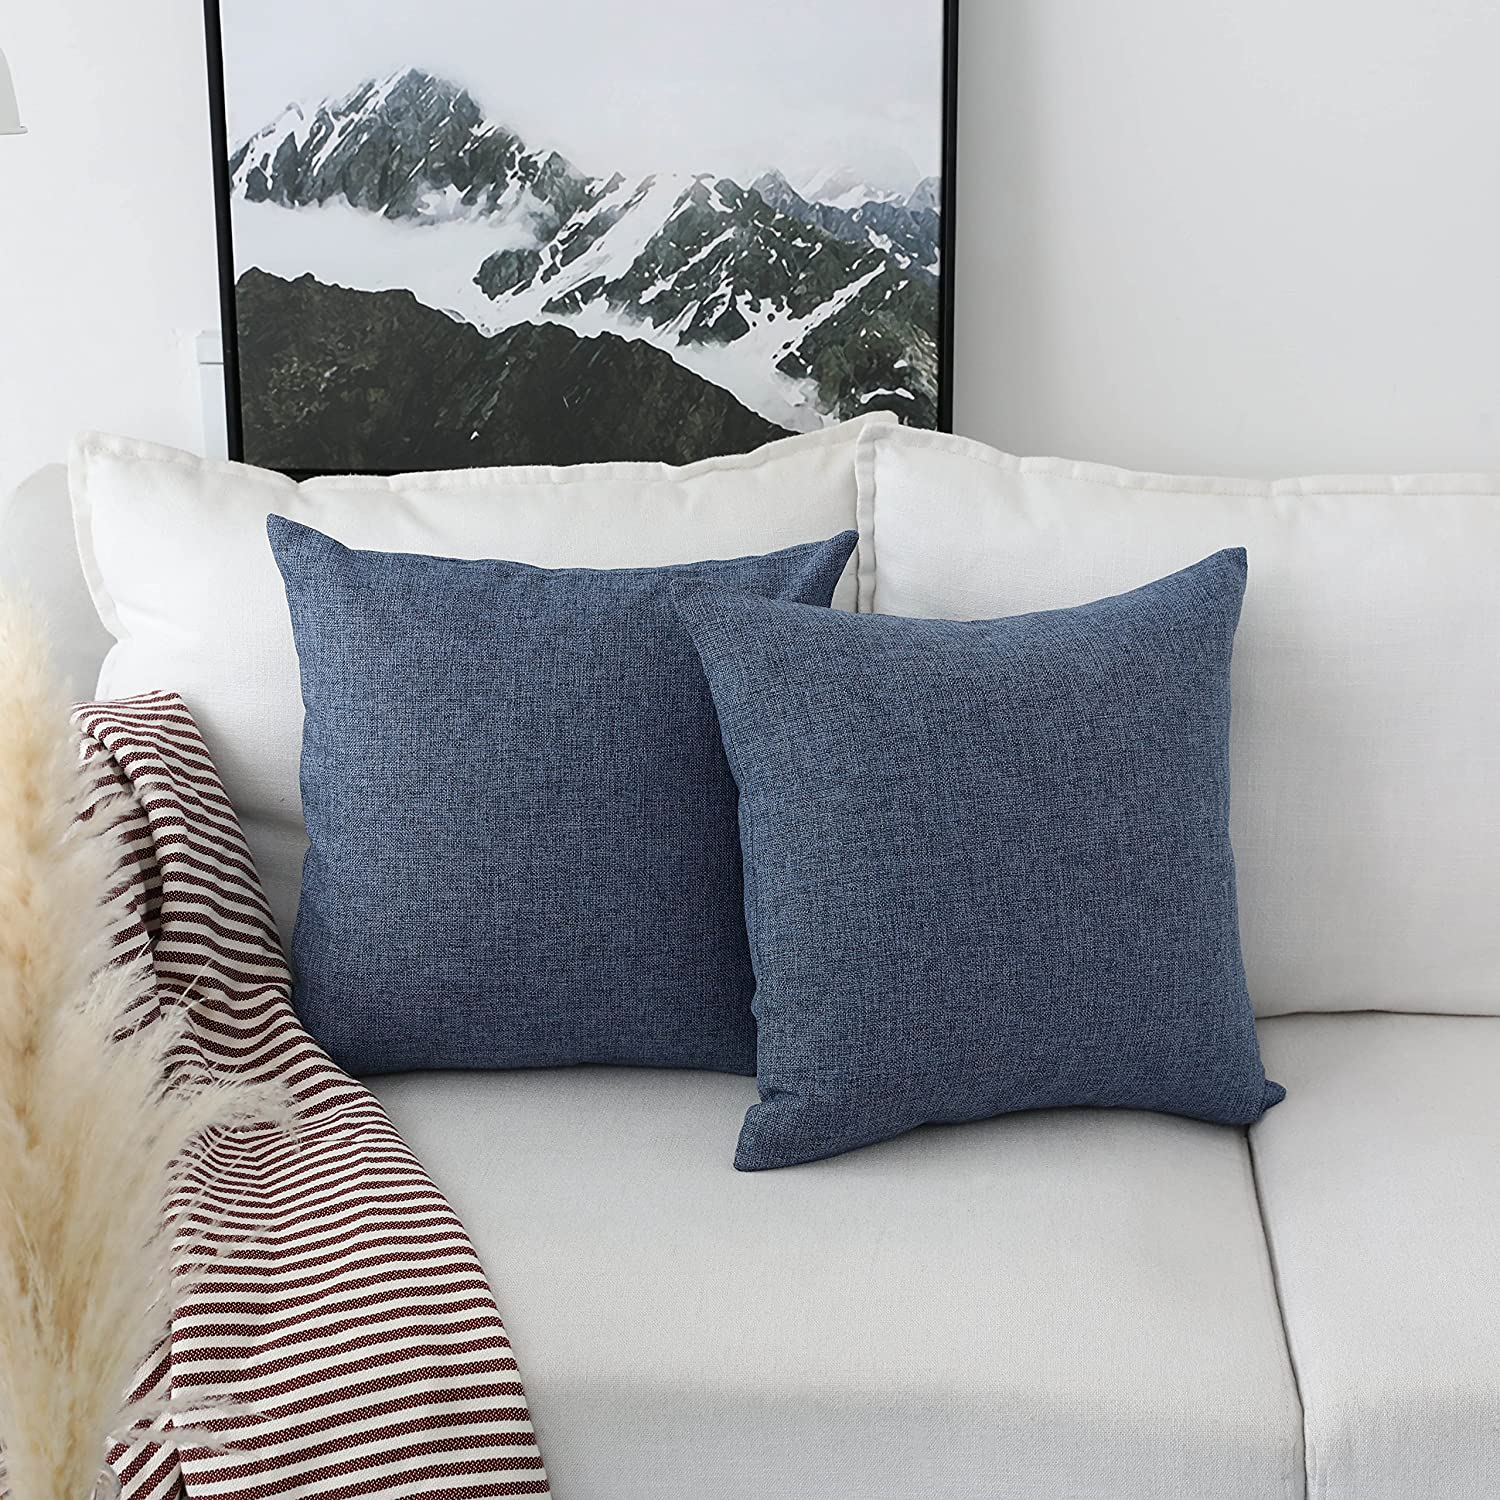 Home Brilliant Burlap Linen Throw Pillow Covers Decorative Fall Cushion Covers, 18x18 inch(45cm), Set of 2, Navy Blue